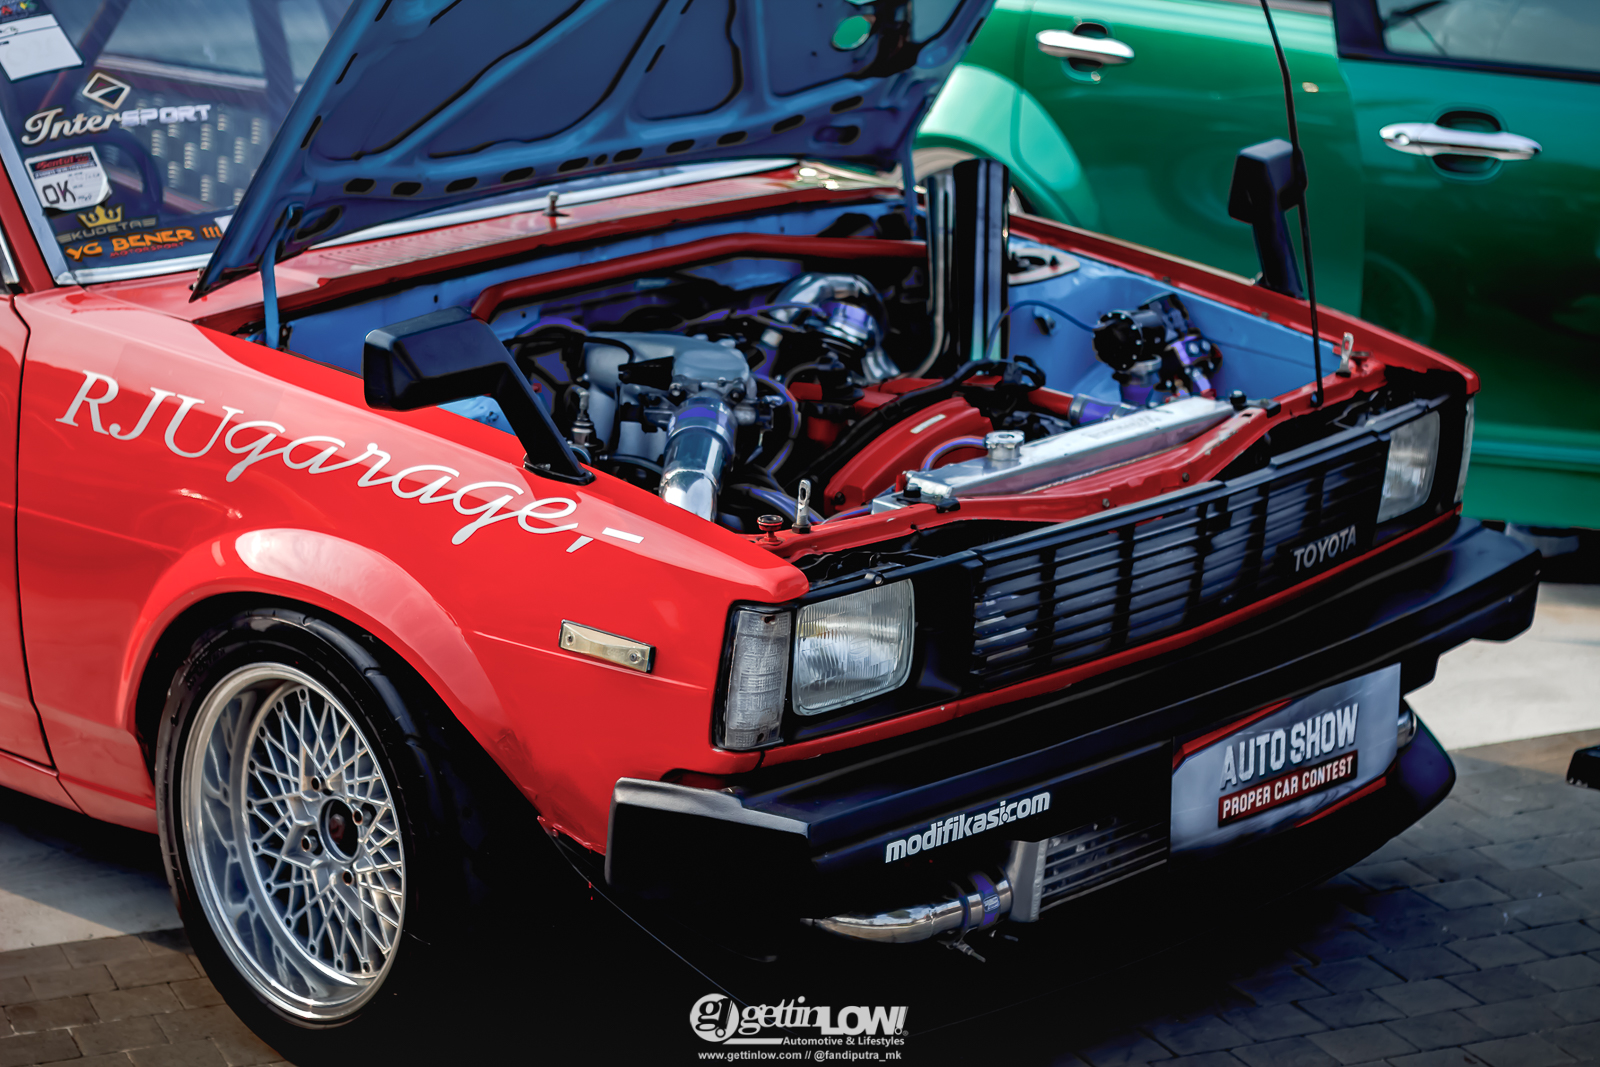 INTERSPORT-PROPERCARCONTEST-QBIG-CANON-145